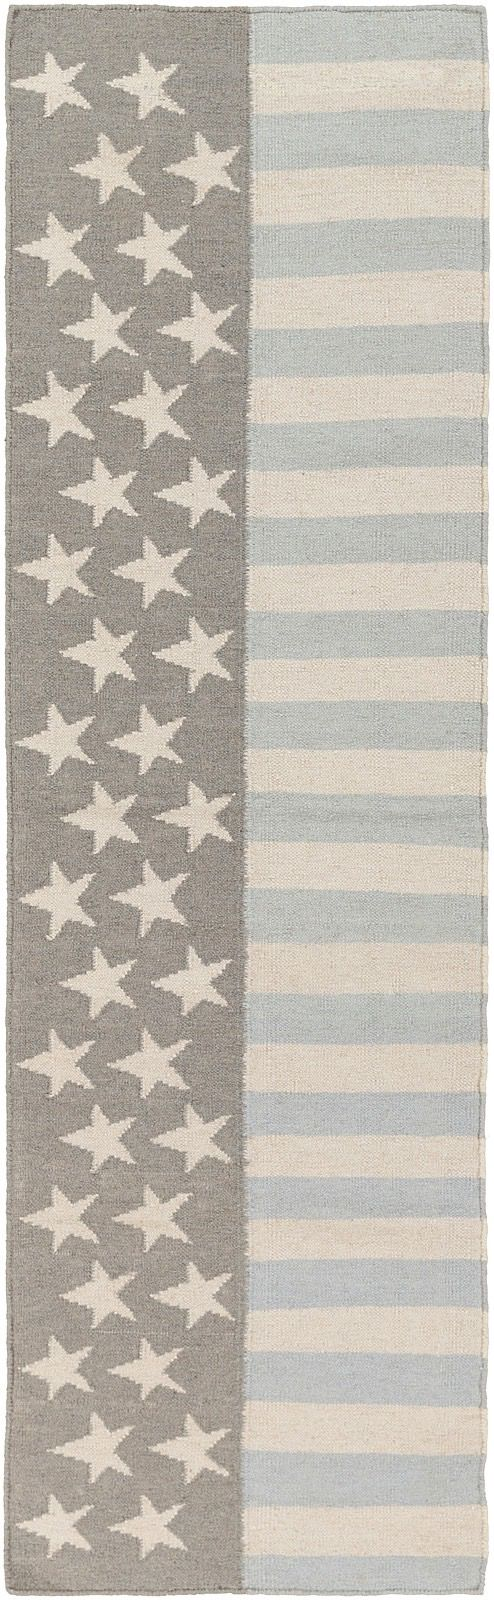 surya washington solid/striped area rug collection